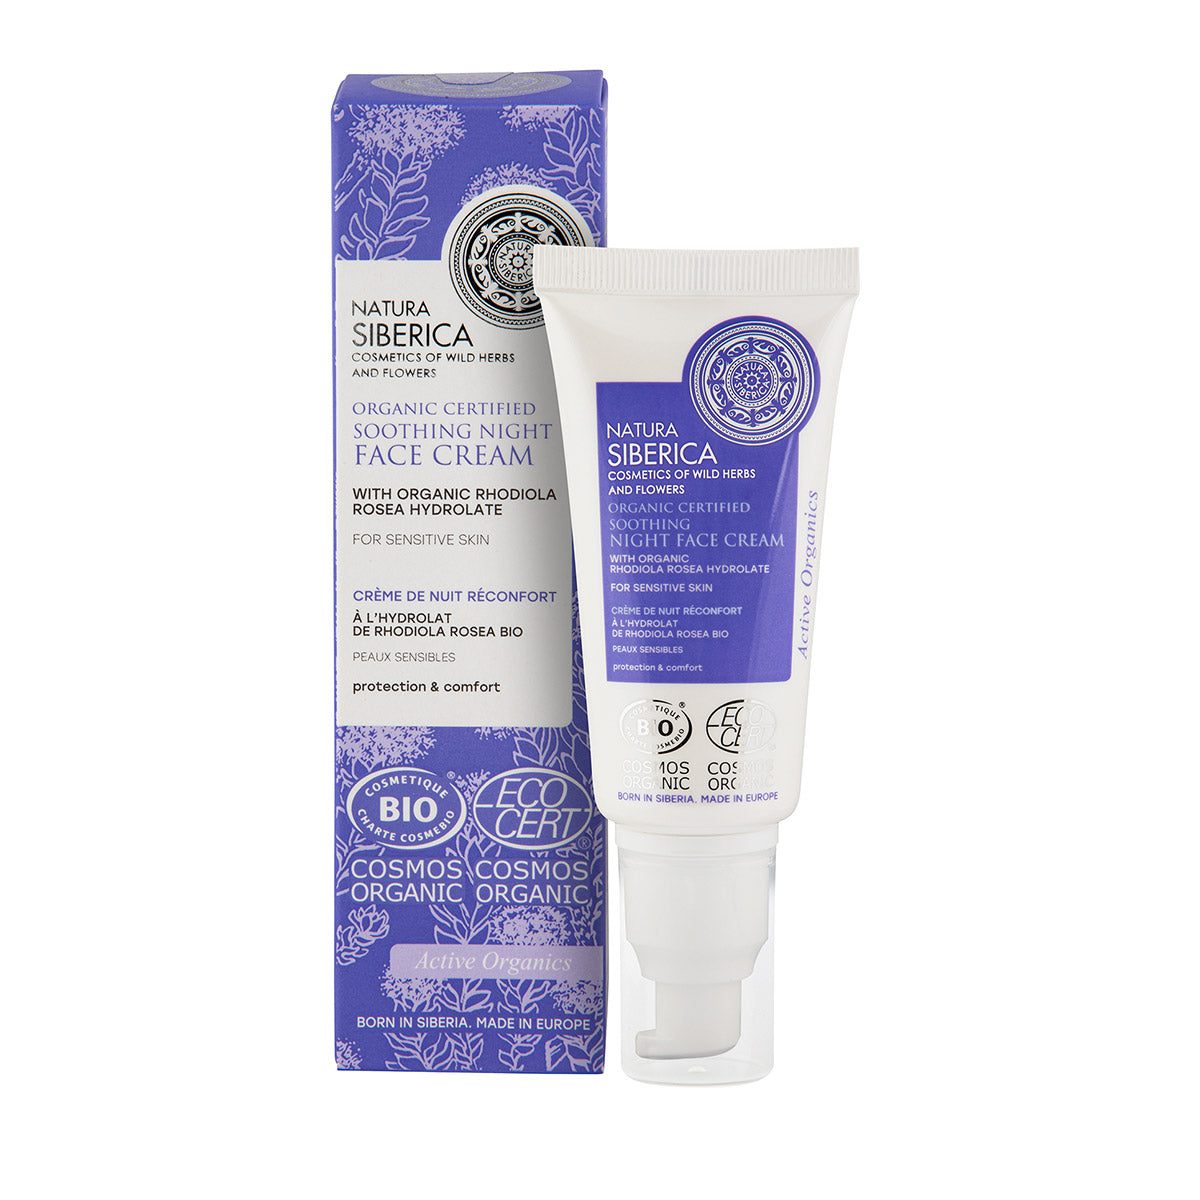 Soothing Night Face Cream for sensitive skin, 50 ml